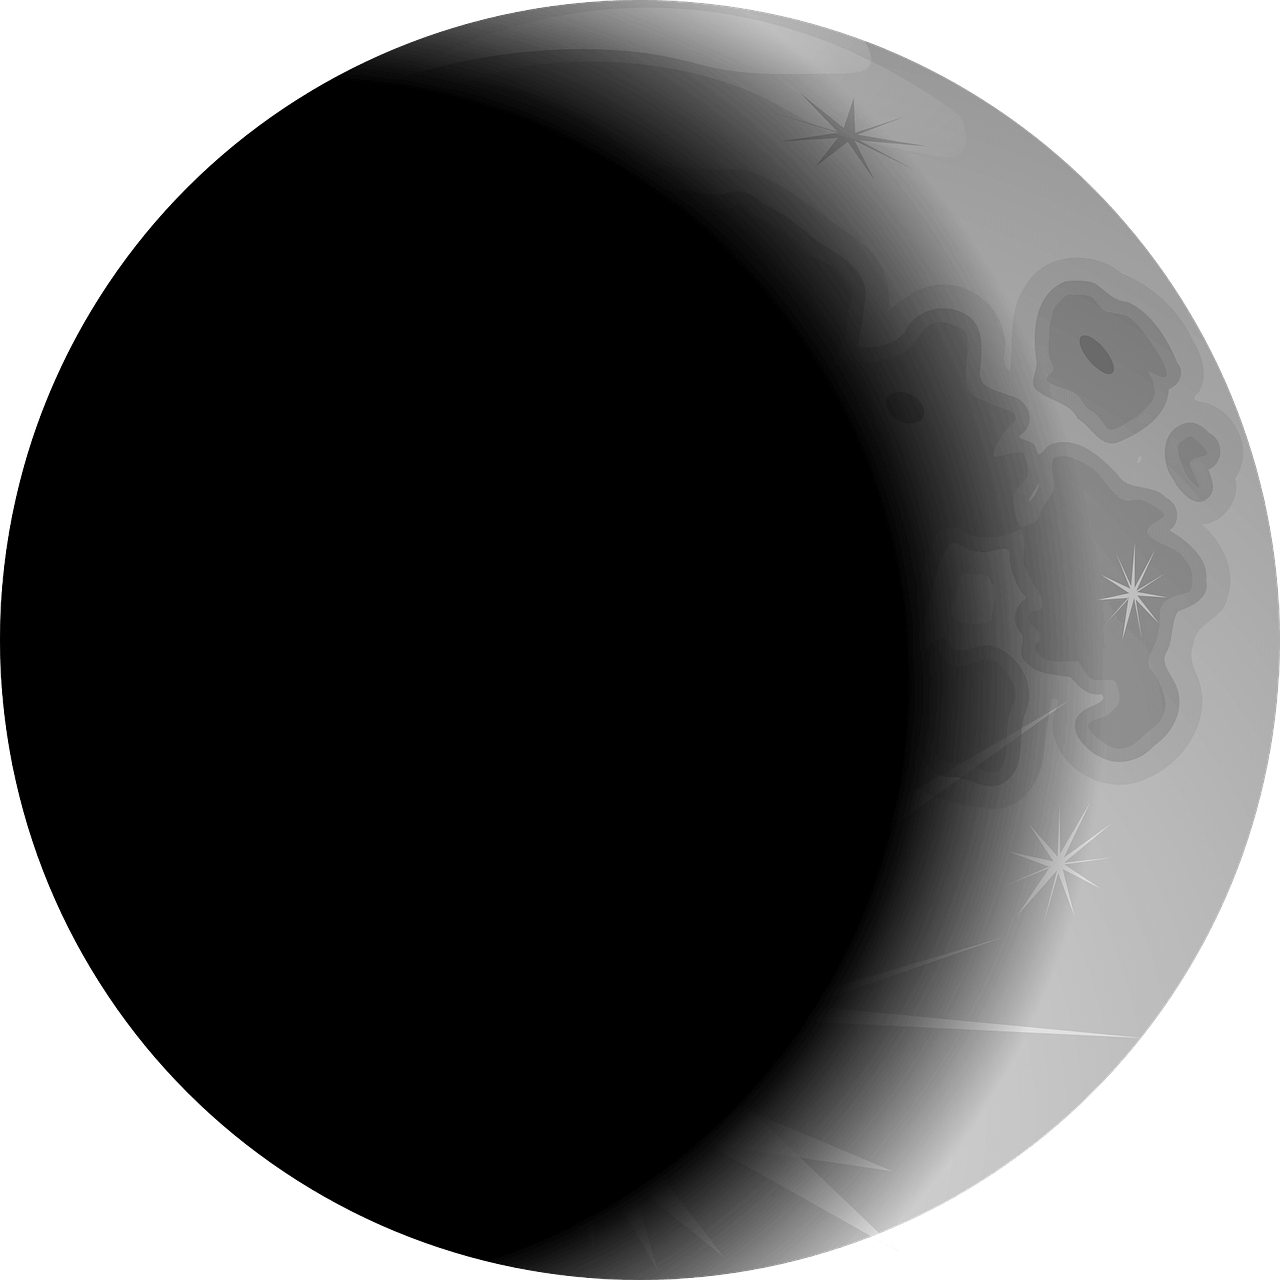 Lunar Eclipse clipart #2, Download drawings